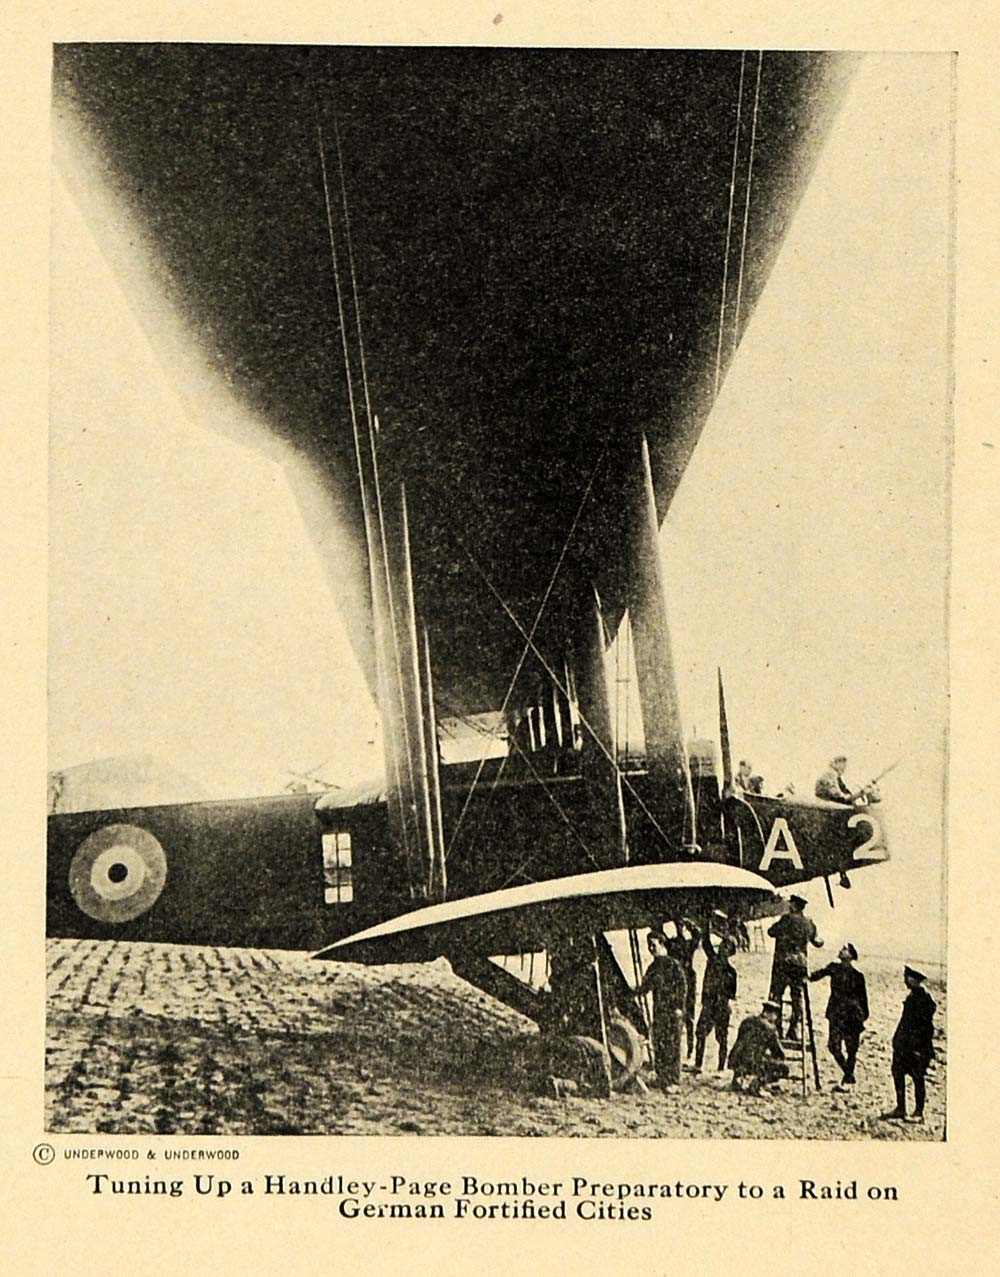 1918 Print Handley-Page Bomber Plane Tune Up Raid WWI - ORIGINAL HISTORIC ILW2